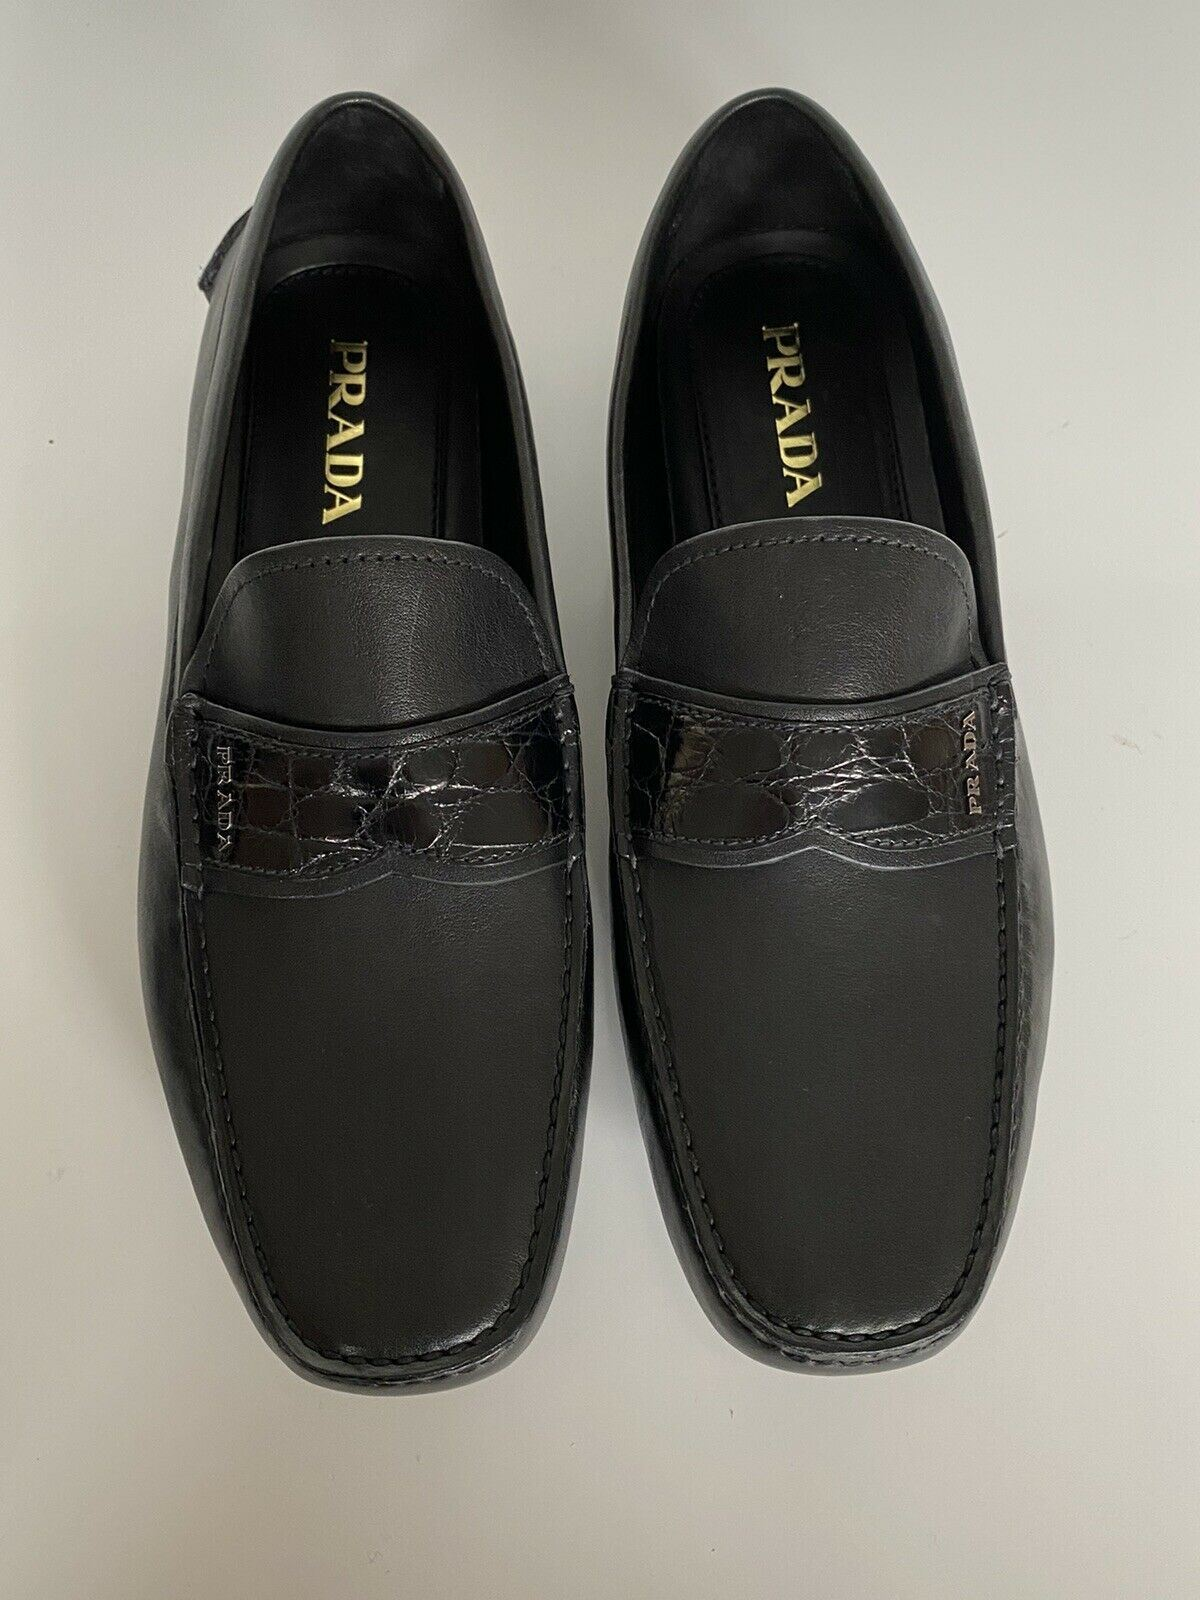 NIB PRADA Men's Leather Loafer Driver Shoes Black 12.5 US (Prada 11.5) IT 2DD141